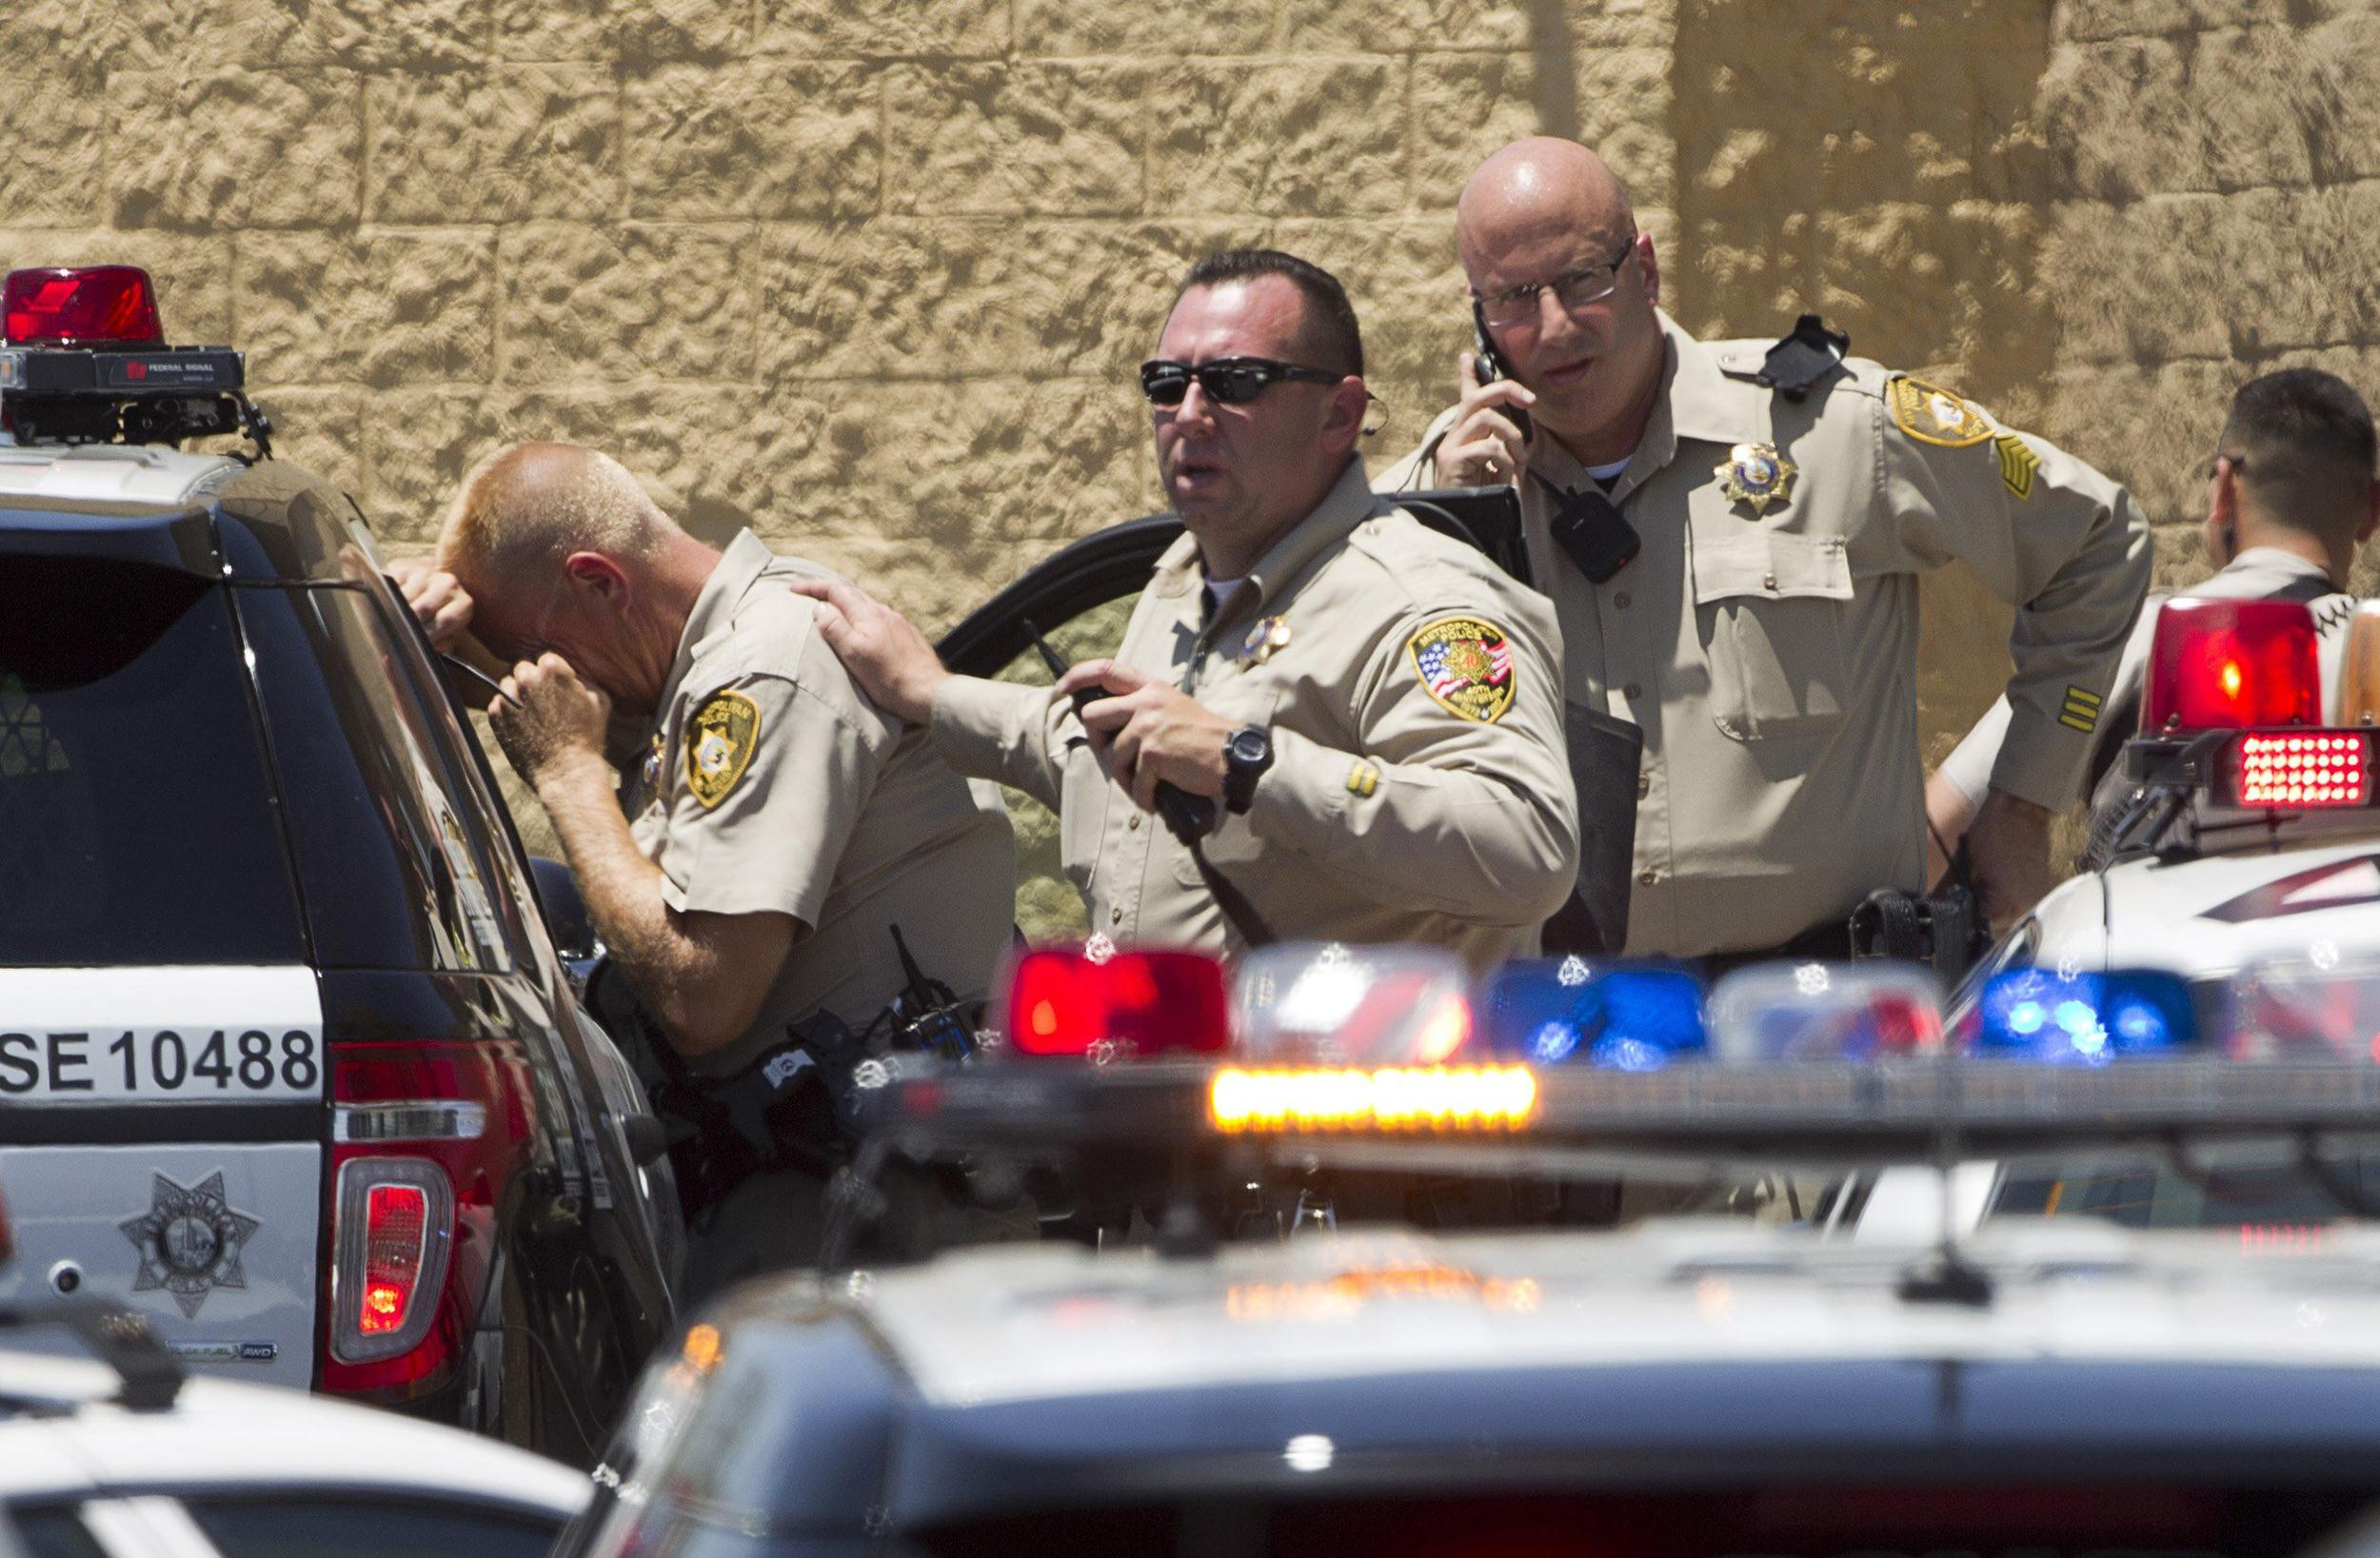 Image: Metro Police officers stand outside a Wal-Mart after a shooting in Las Vegas